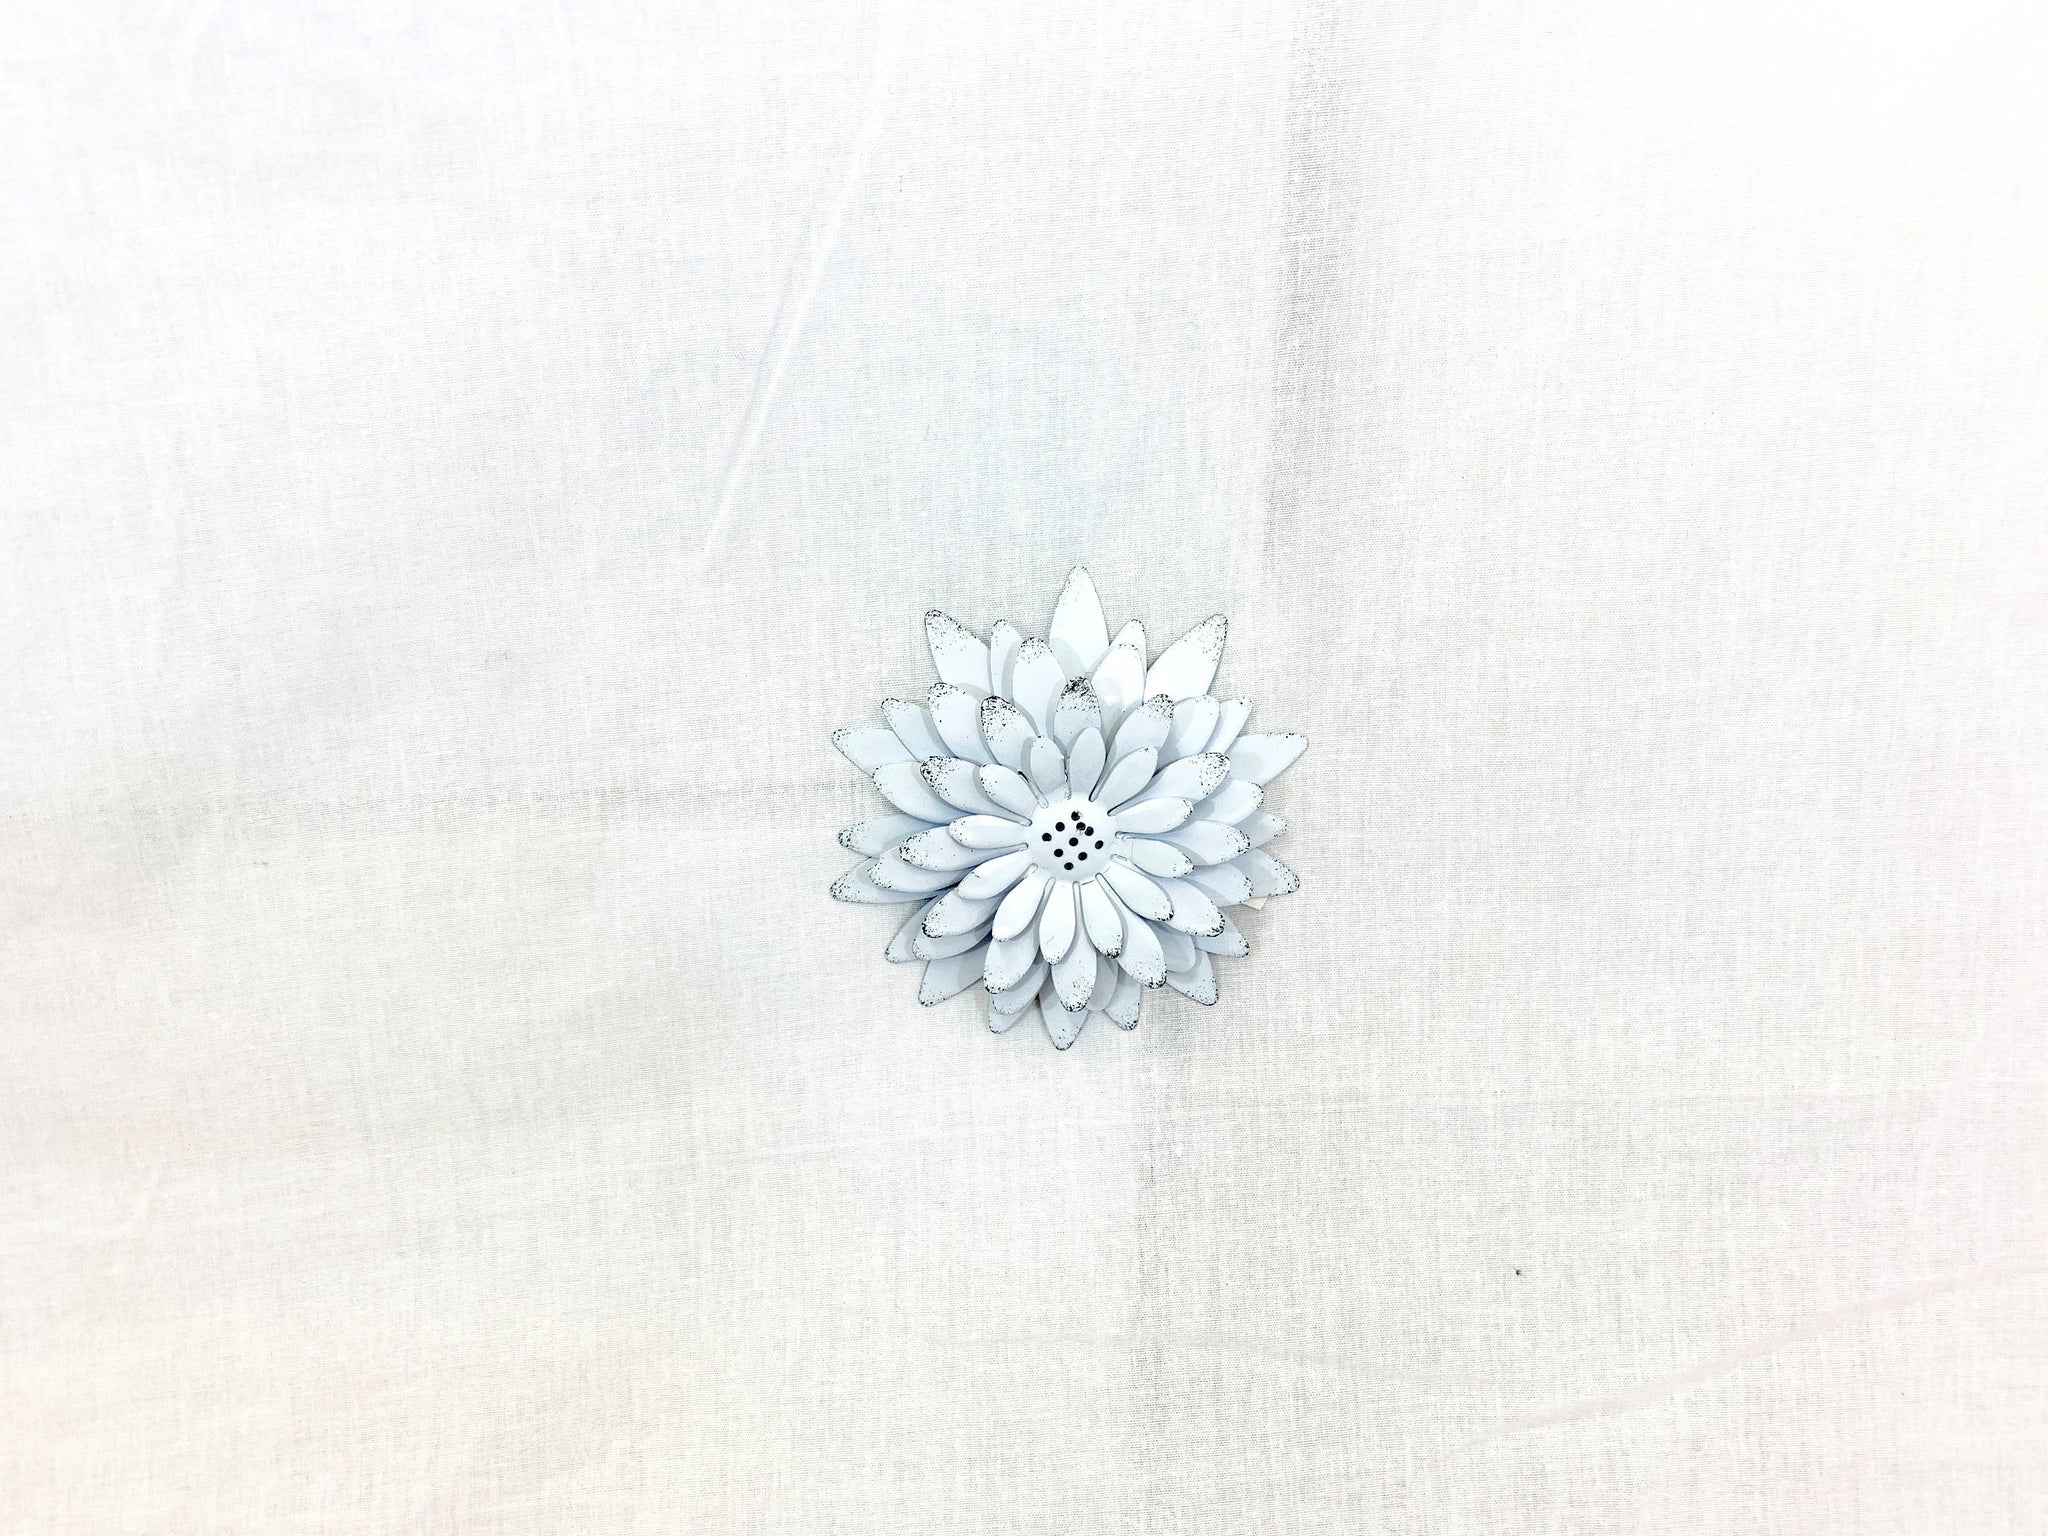 White Sunflower Magnet With Black Speckles Tips